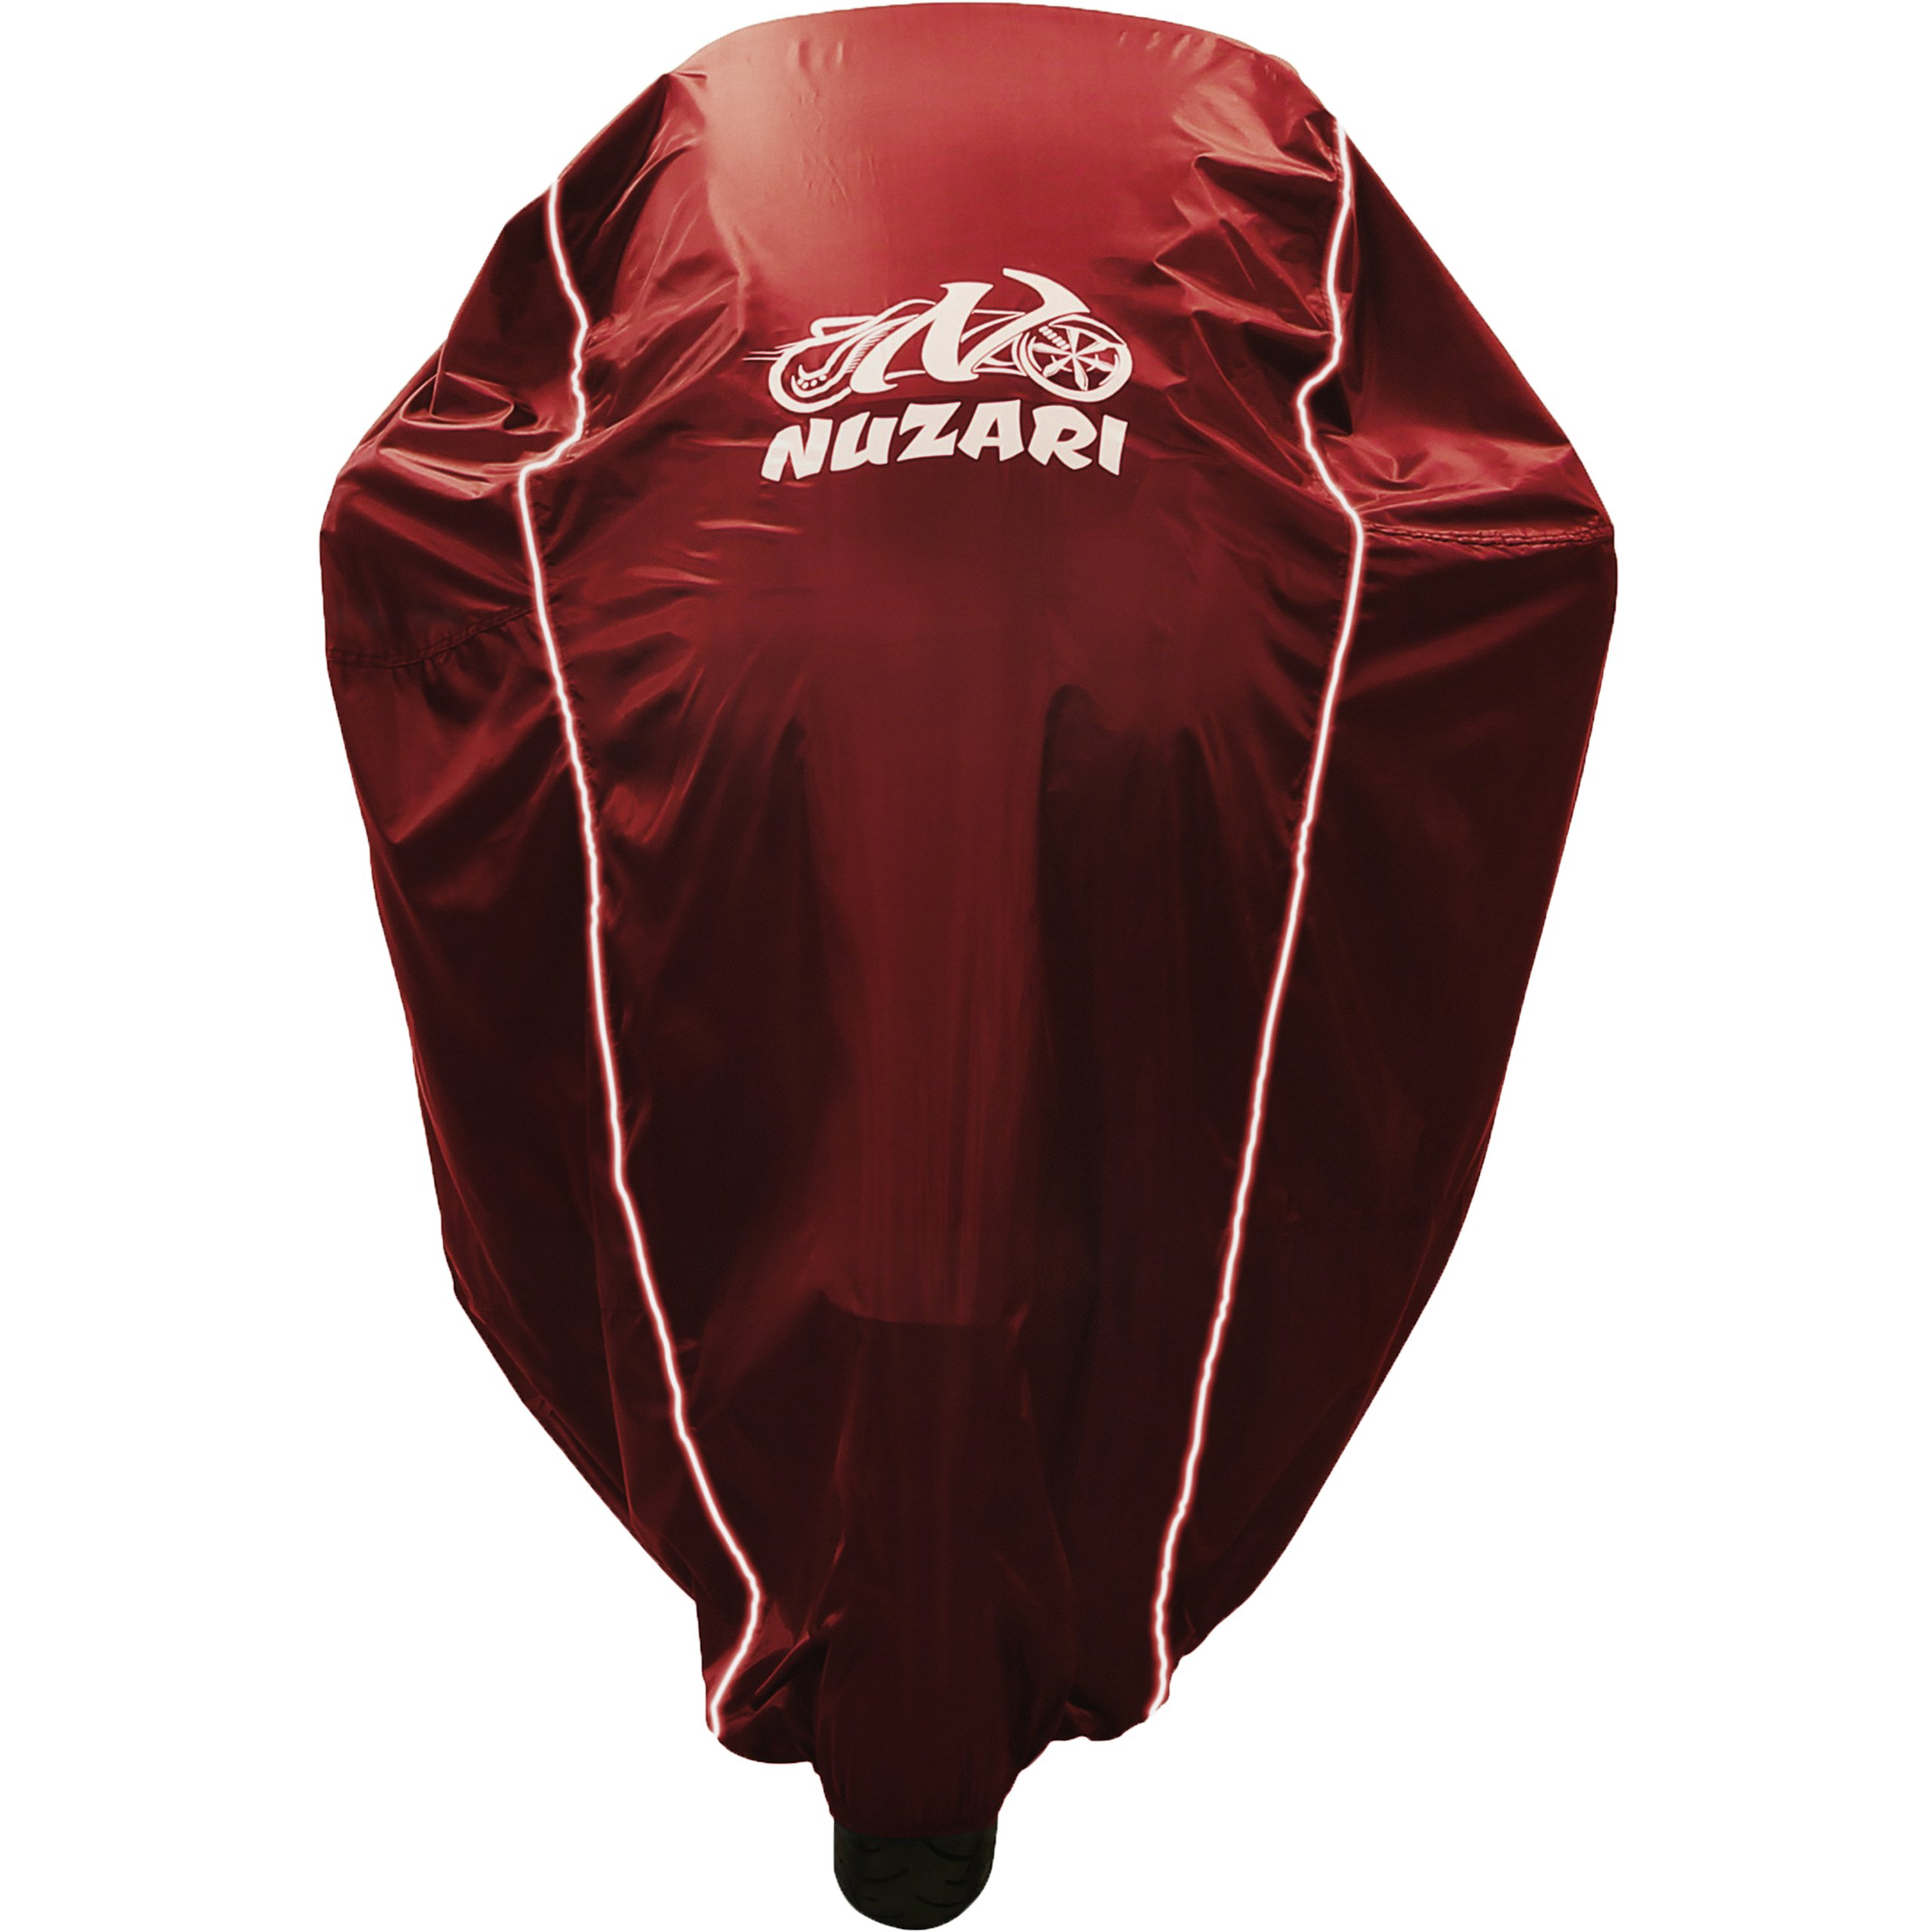 All Season Best Waterproof Motorcycle Cover With Improved Weather Protection, Windproof Buckle, Breathable Airvent, Winter Bike Storage & Bag 4 Sportbikes,Cruisers,Choppers,Touring,Honda Medium Red